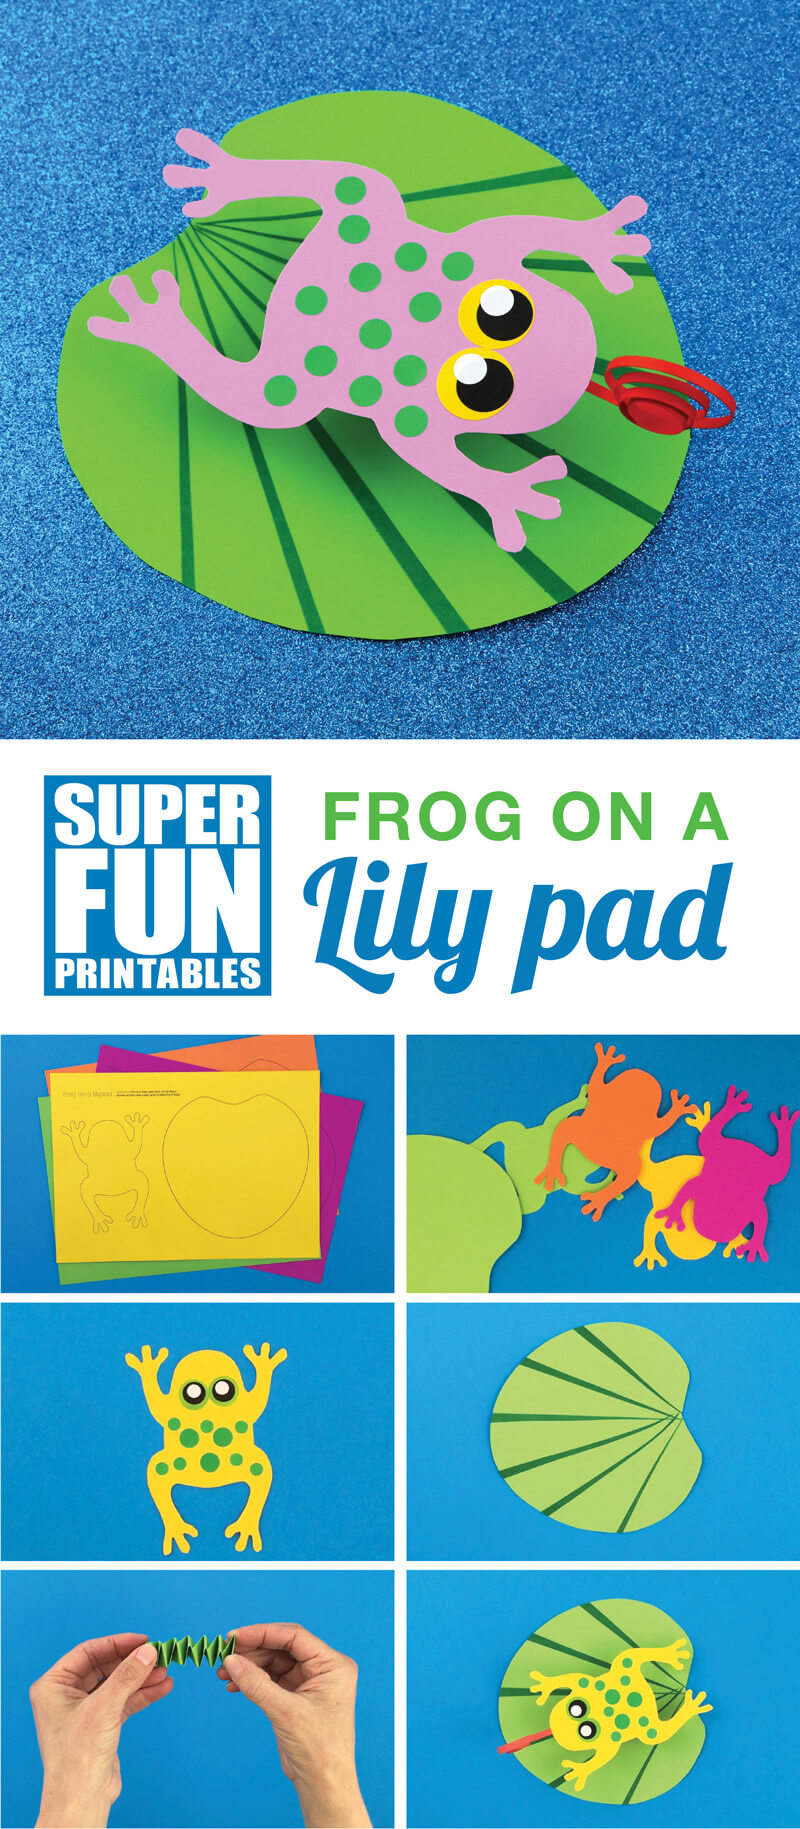 Make a cute bouncy frog on a lily pad craft for kids with this printable template #kidscrafts #frogs #animalcrafts #papercrafts #printablecrafts